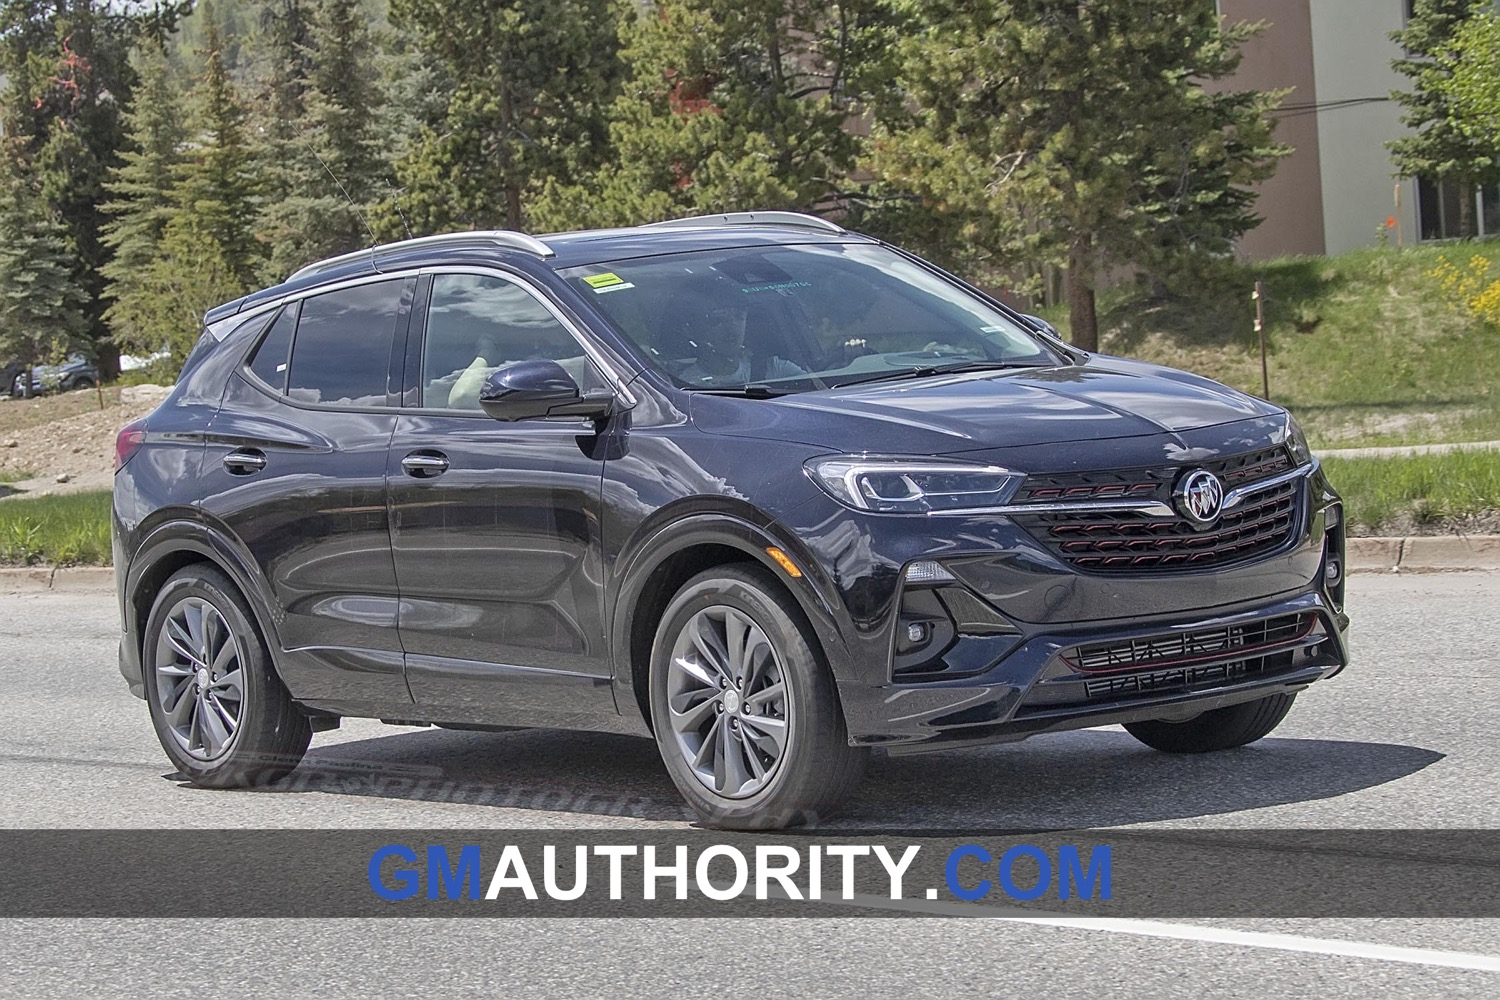 2022 Buick Encore Gx Info, Specs, Wiki | Gm Authority 2022 Buick Encore Gx Engine Specs, Features, Fwd